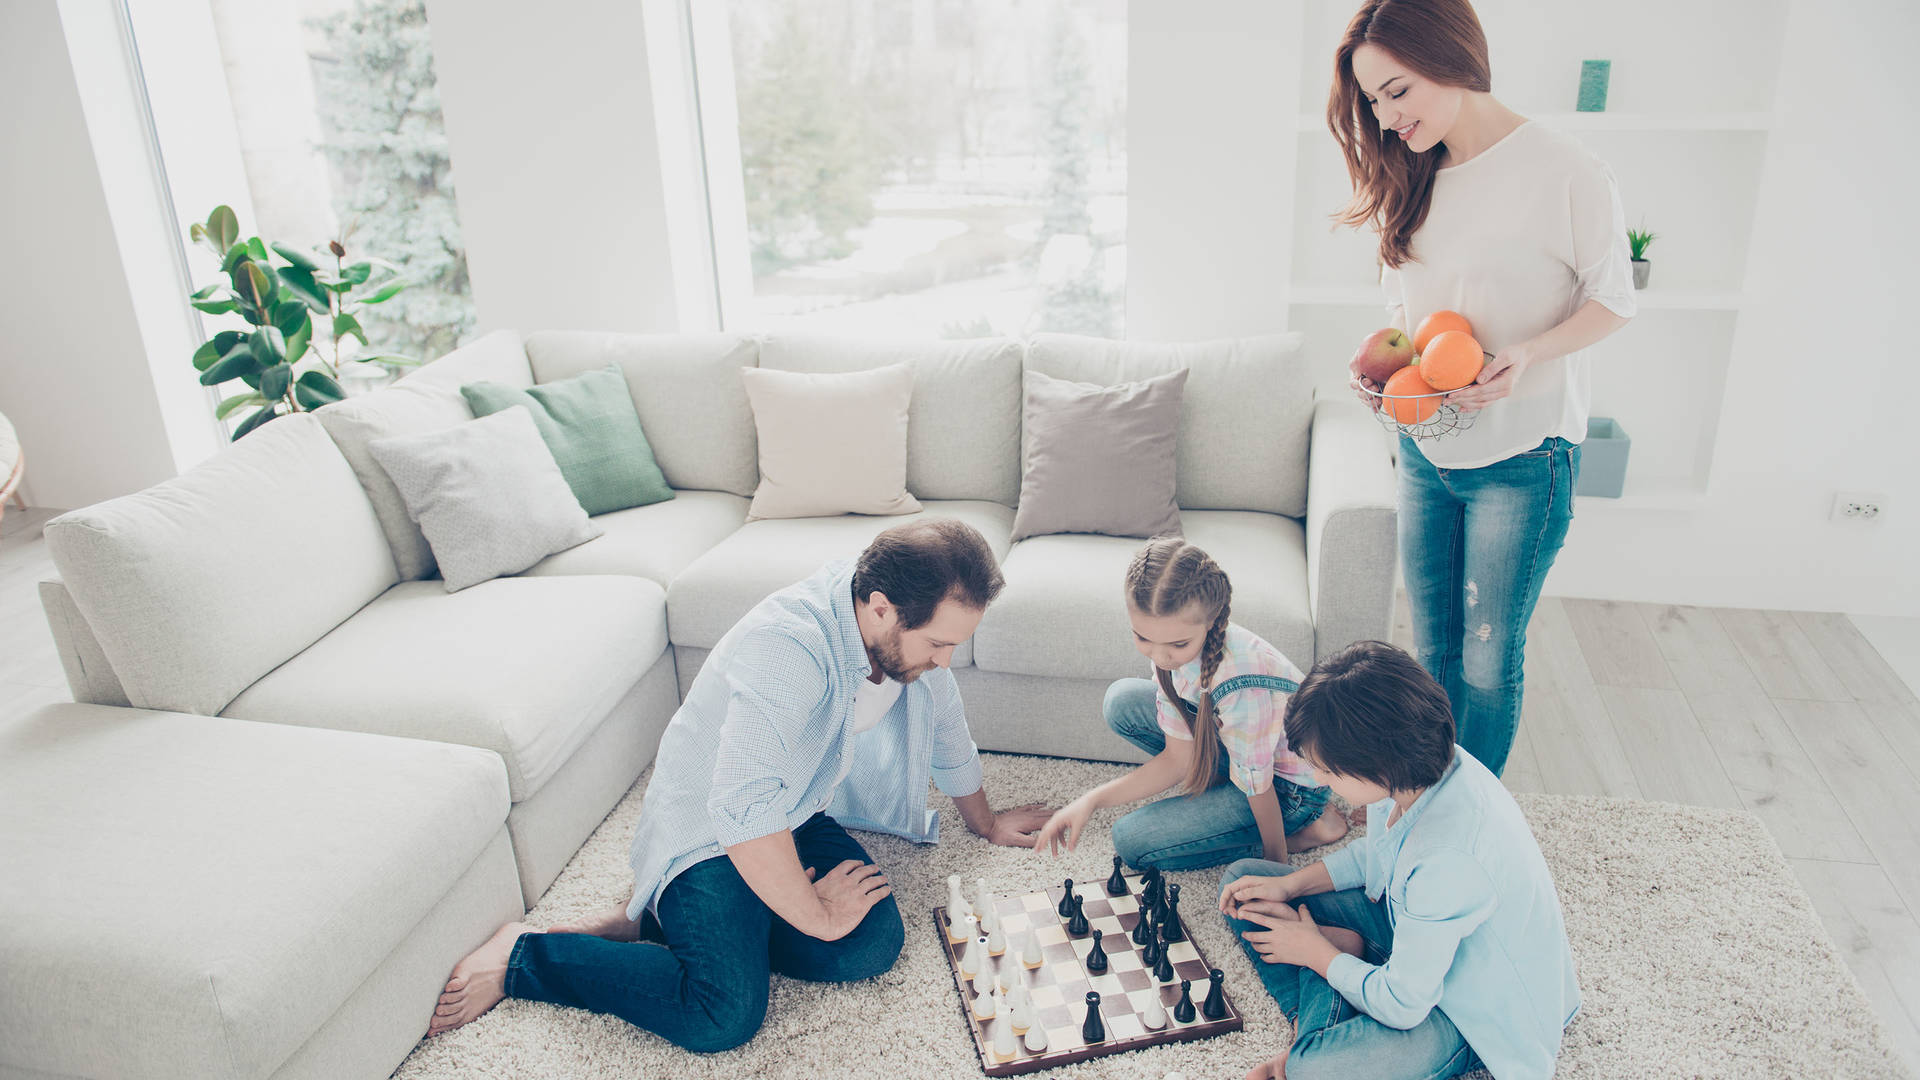 Boardgames played by a family